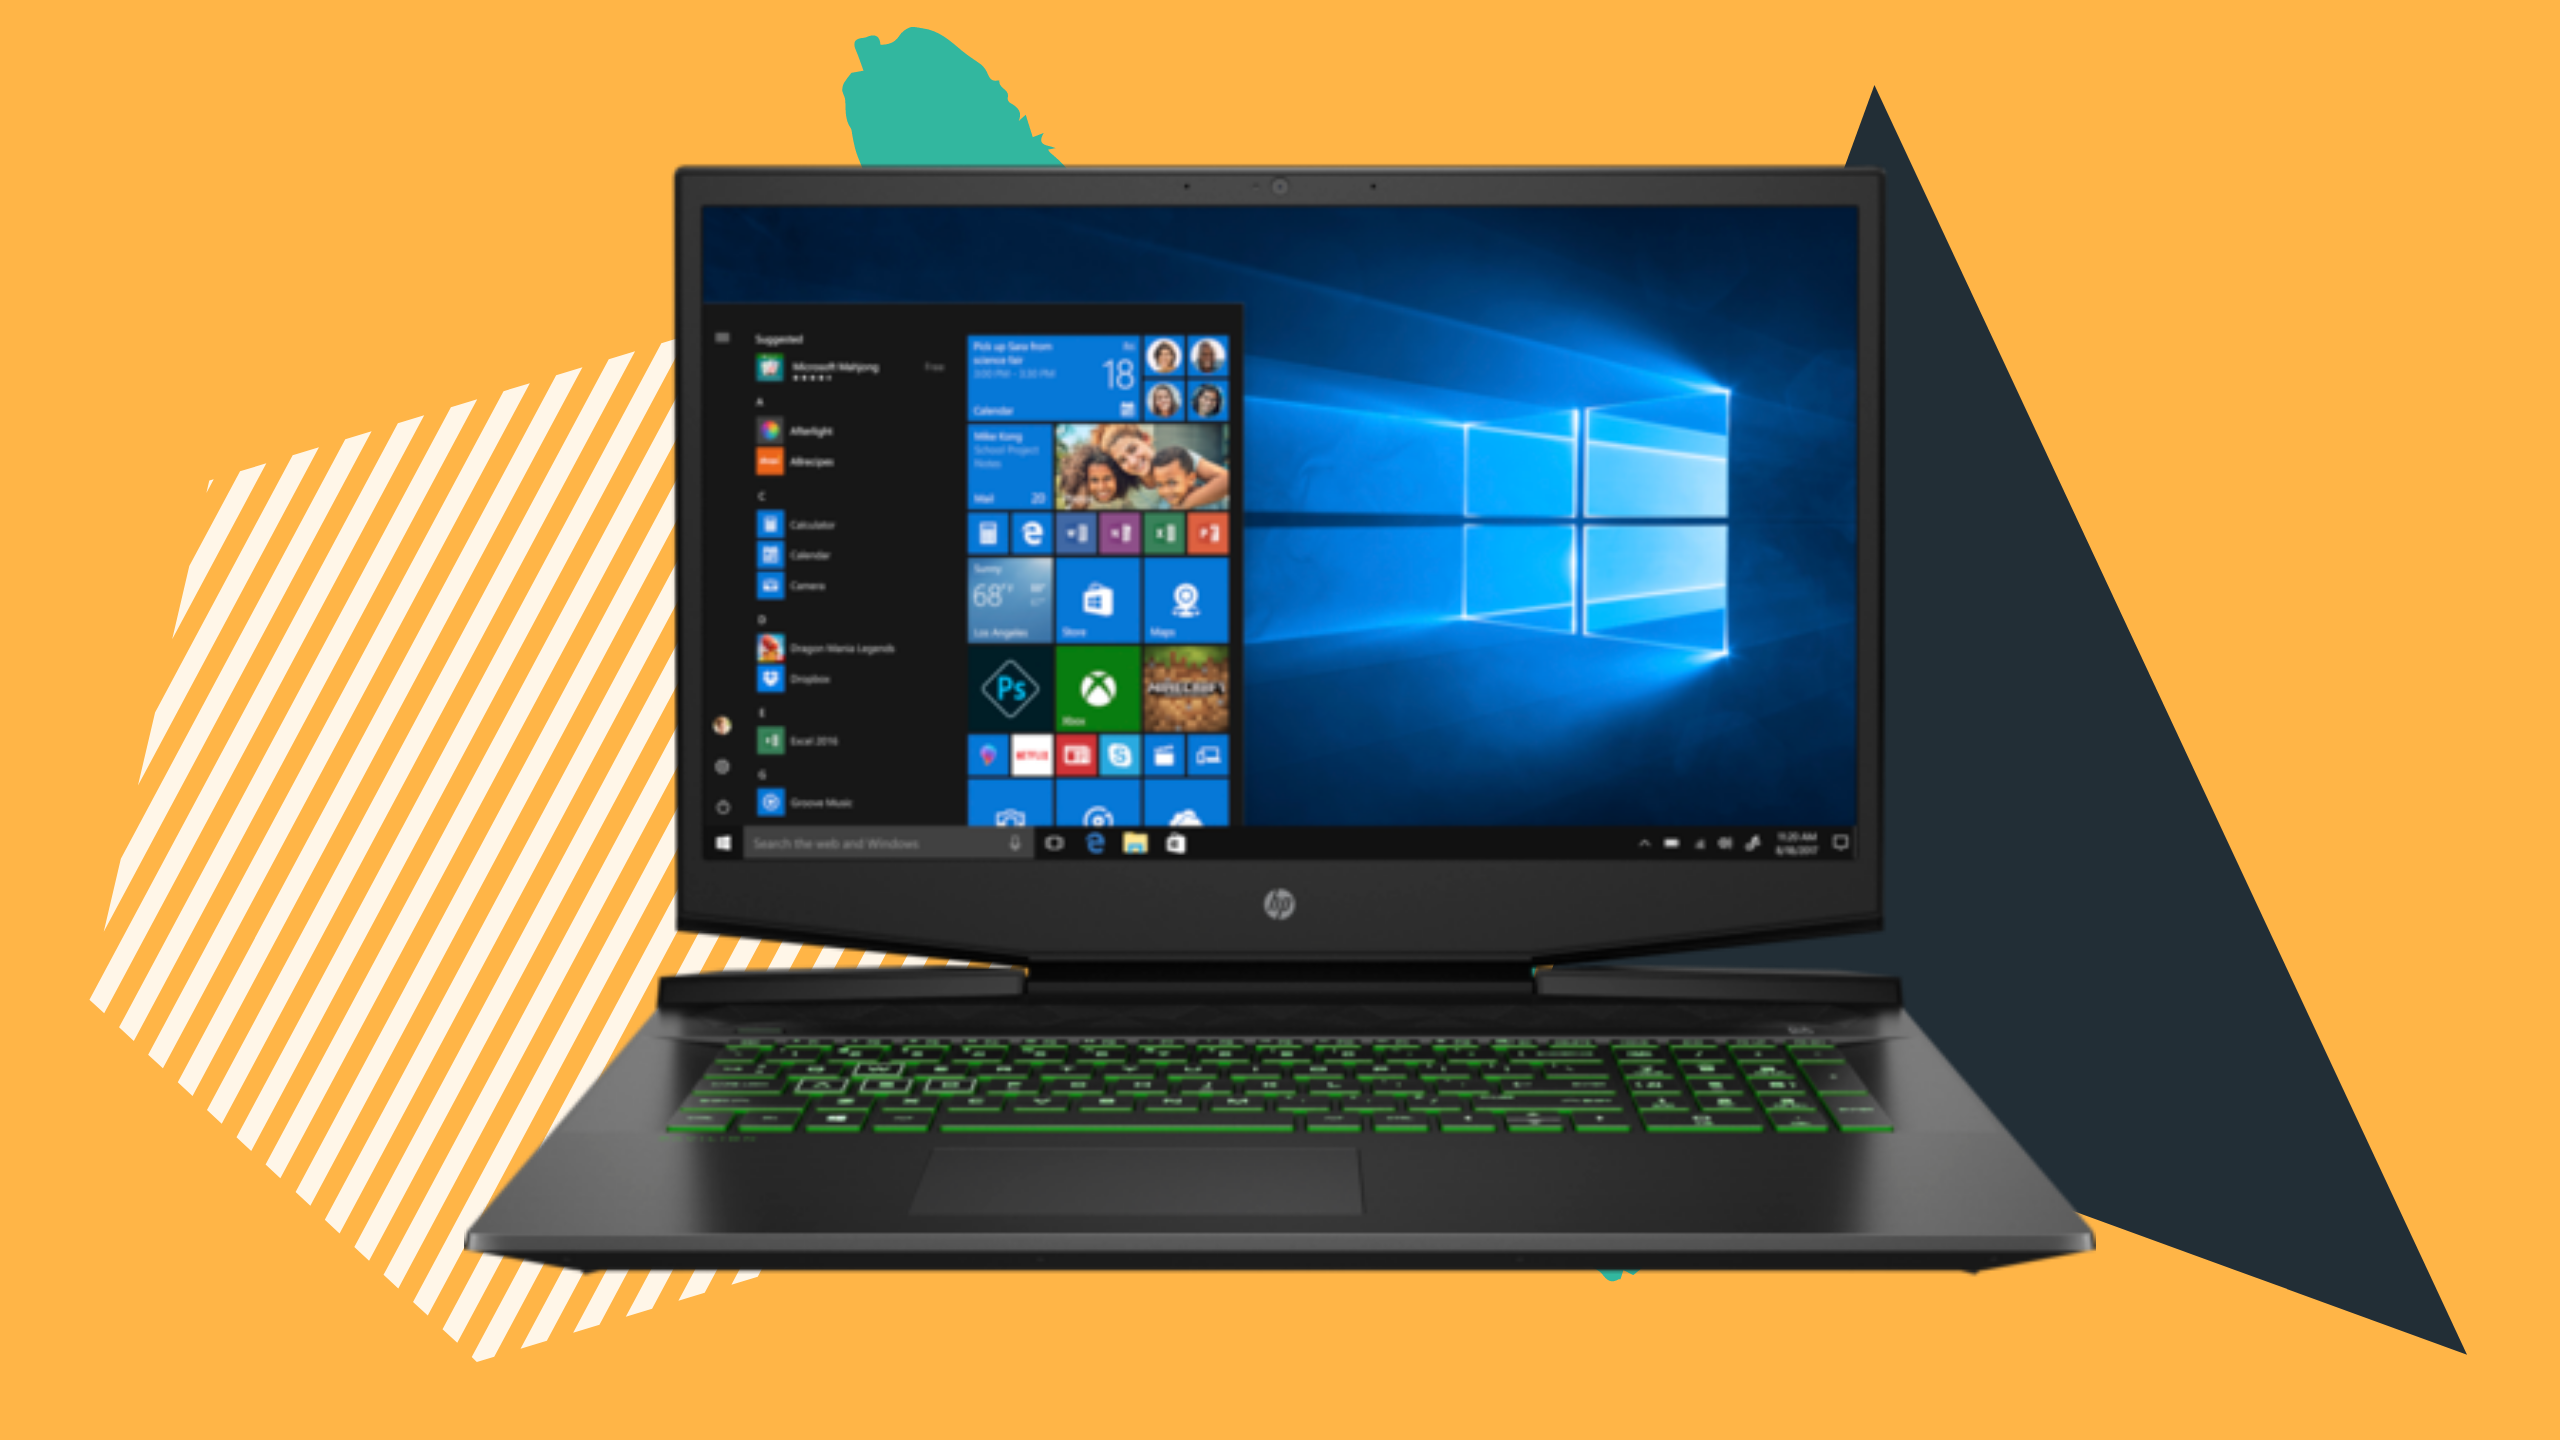 Best Gaming Laptops That Cost Less Than 1000 Budget Picks For 2020